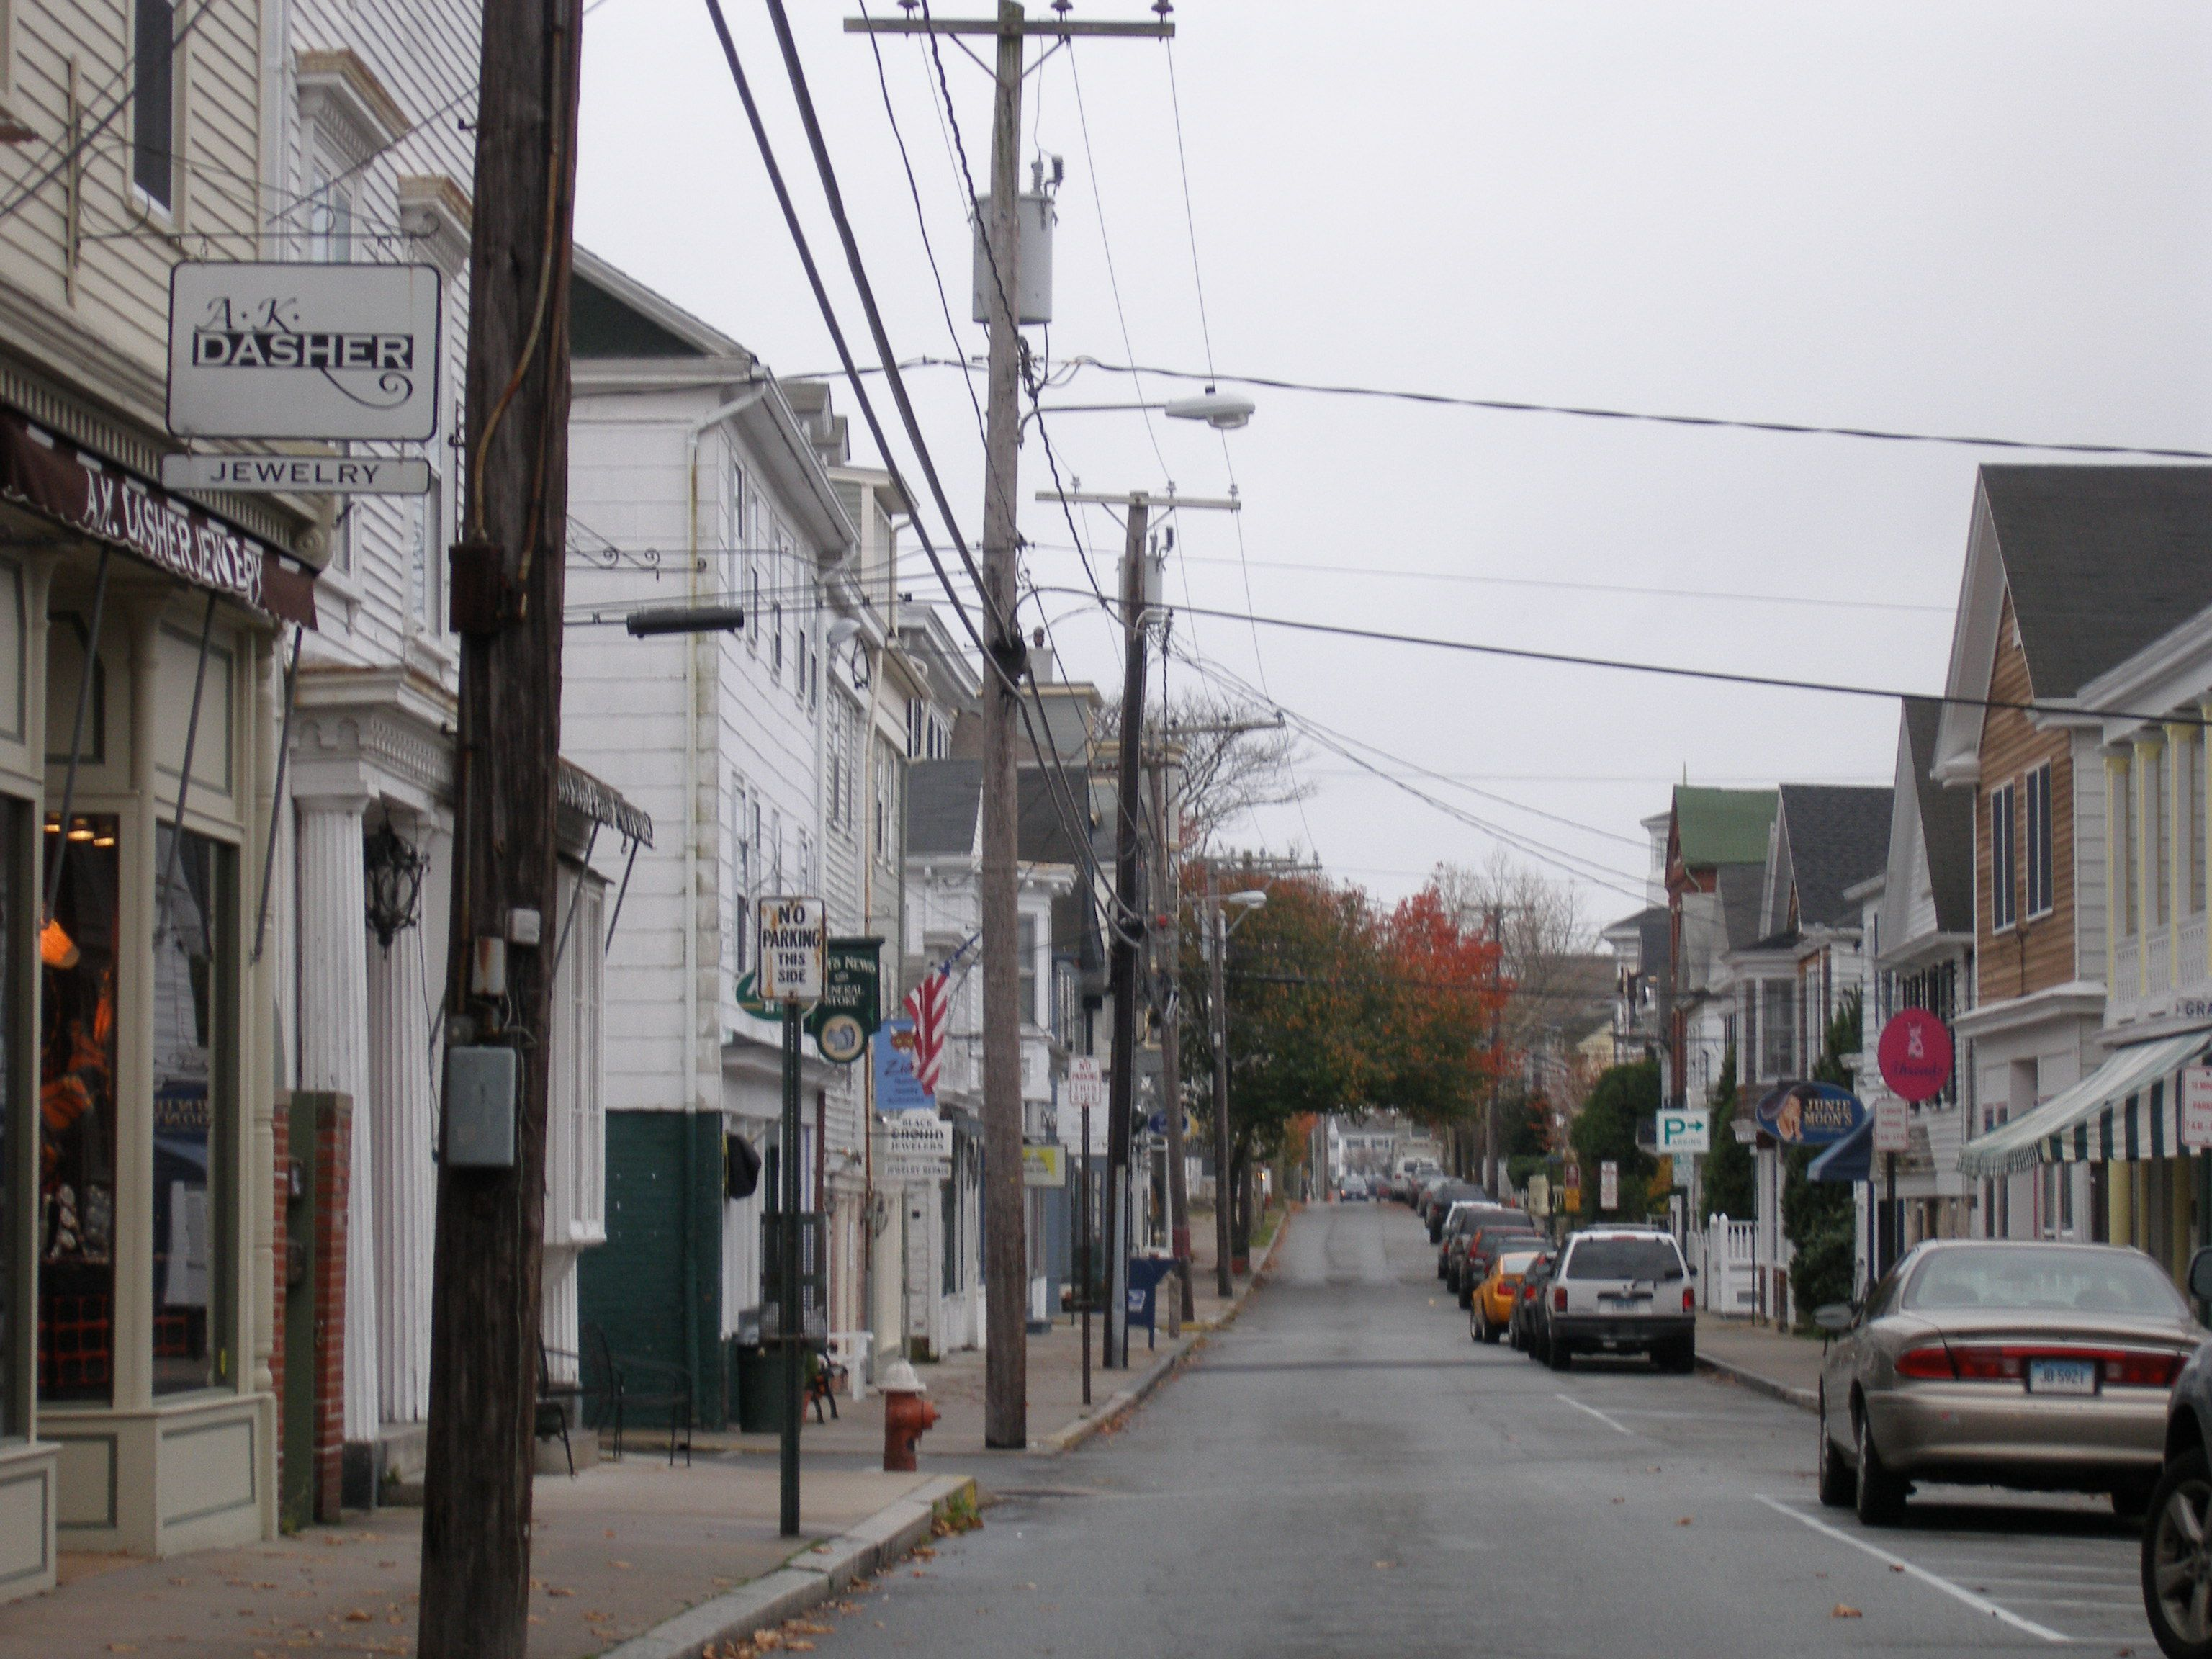 Stonington, Connecticut - A K  Dasher, BEST jewelry store